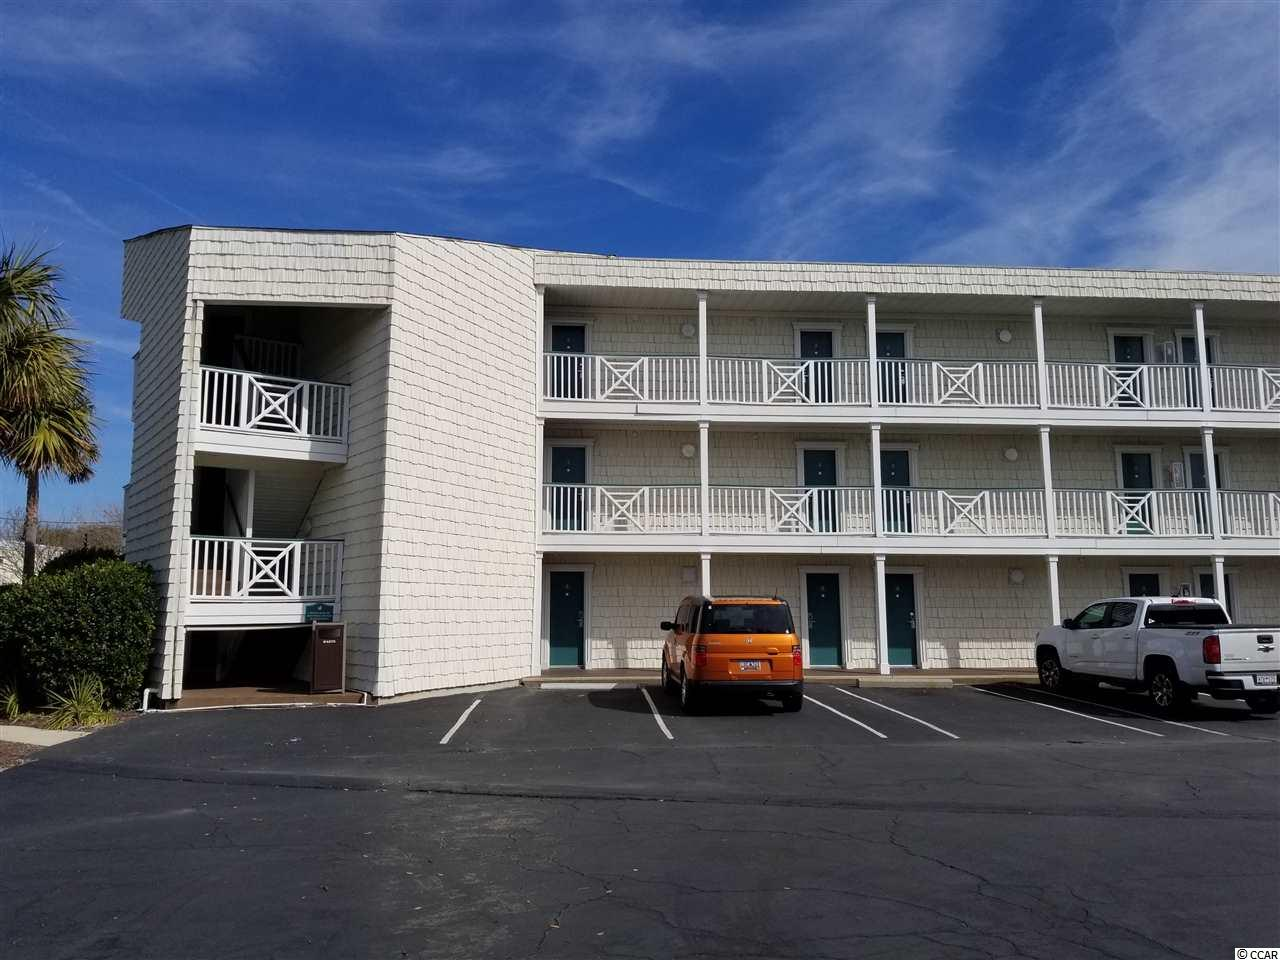 Your place at the beach. 2nd floor with ocean view if you look out of back window between beach houses. Enjoy the swimming pool, restaurant, beach front bar and grill and the ocean. Great beach. Presently on rental program at Litchfield Inn.